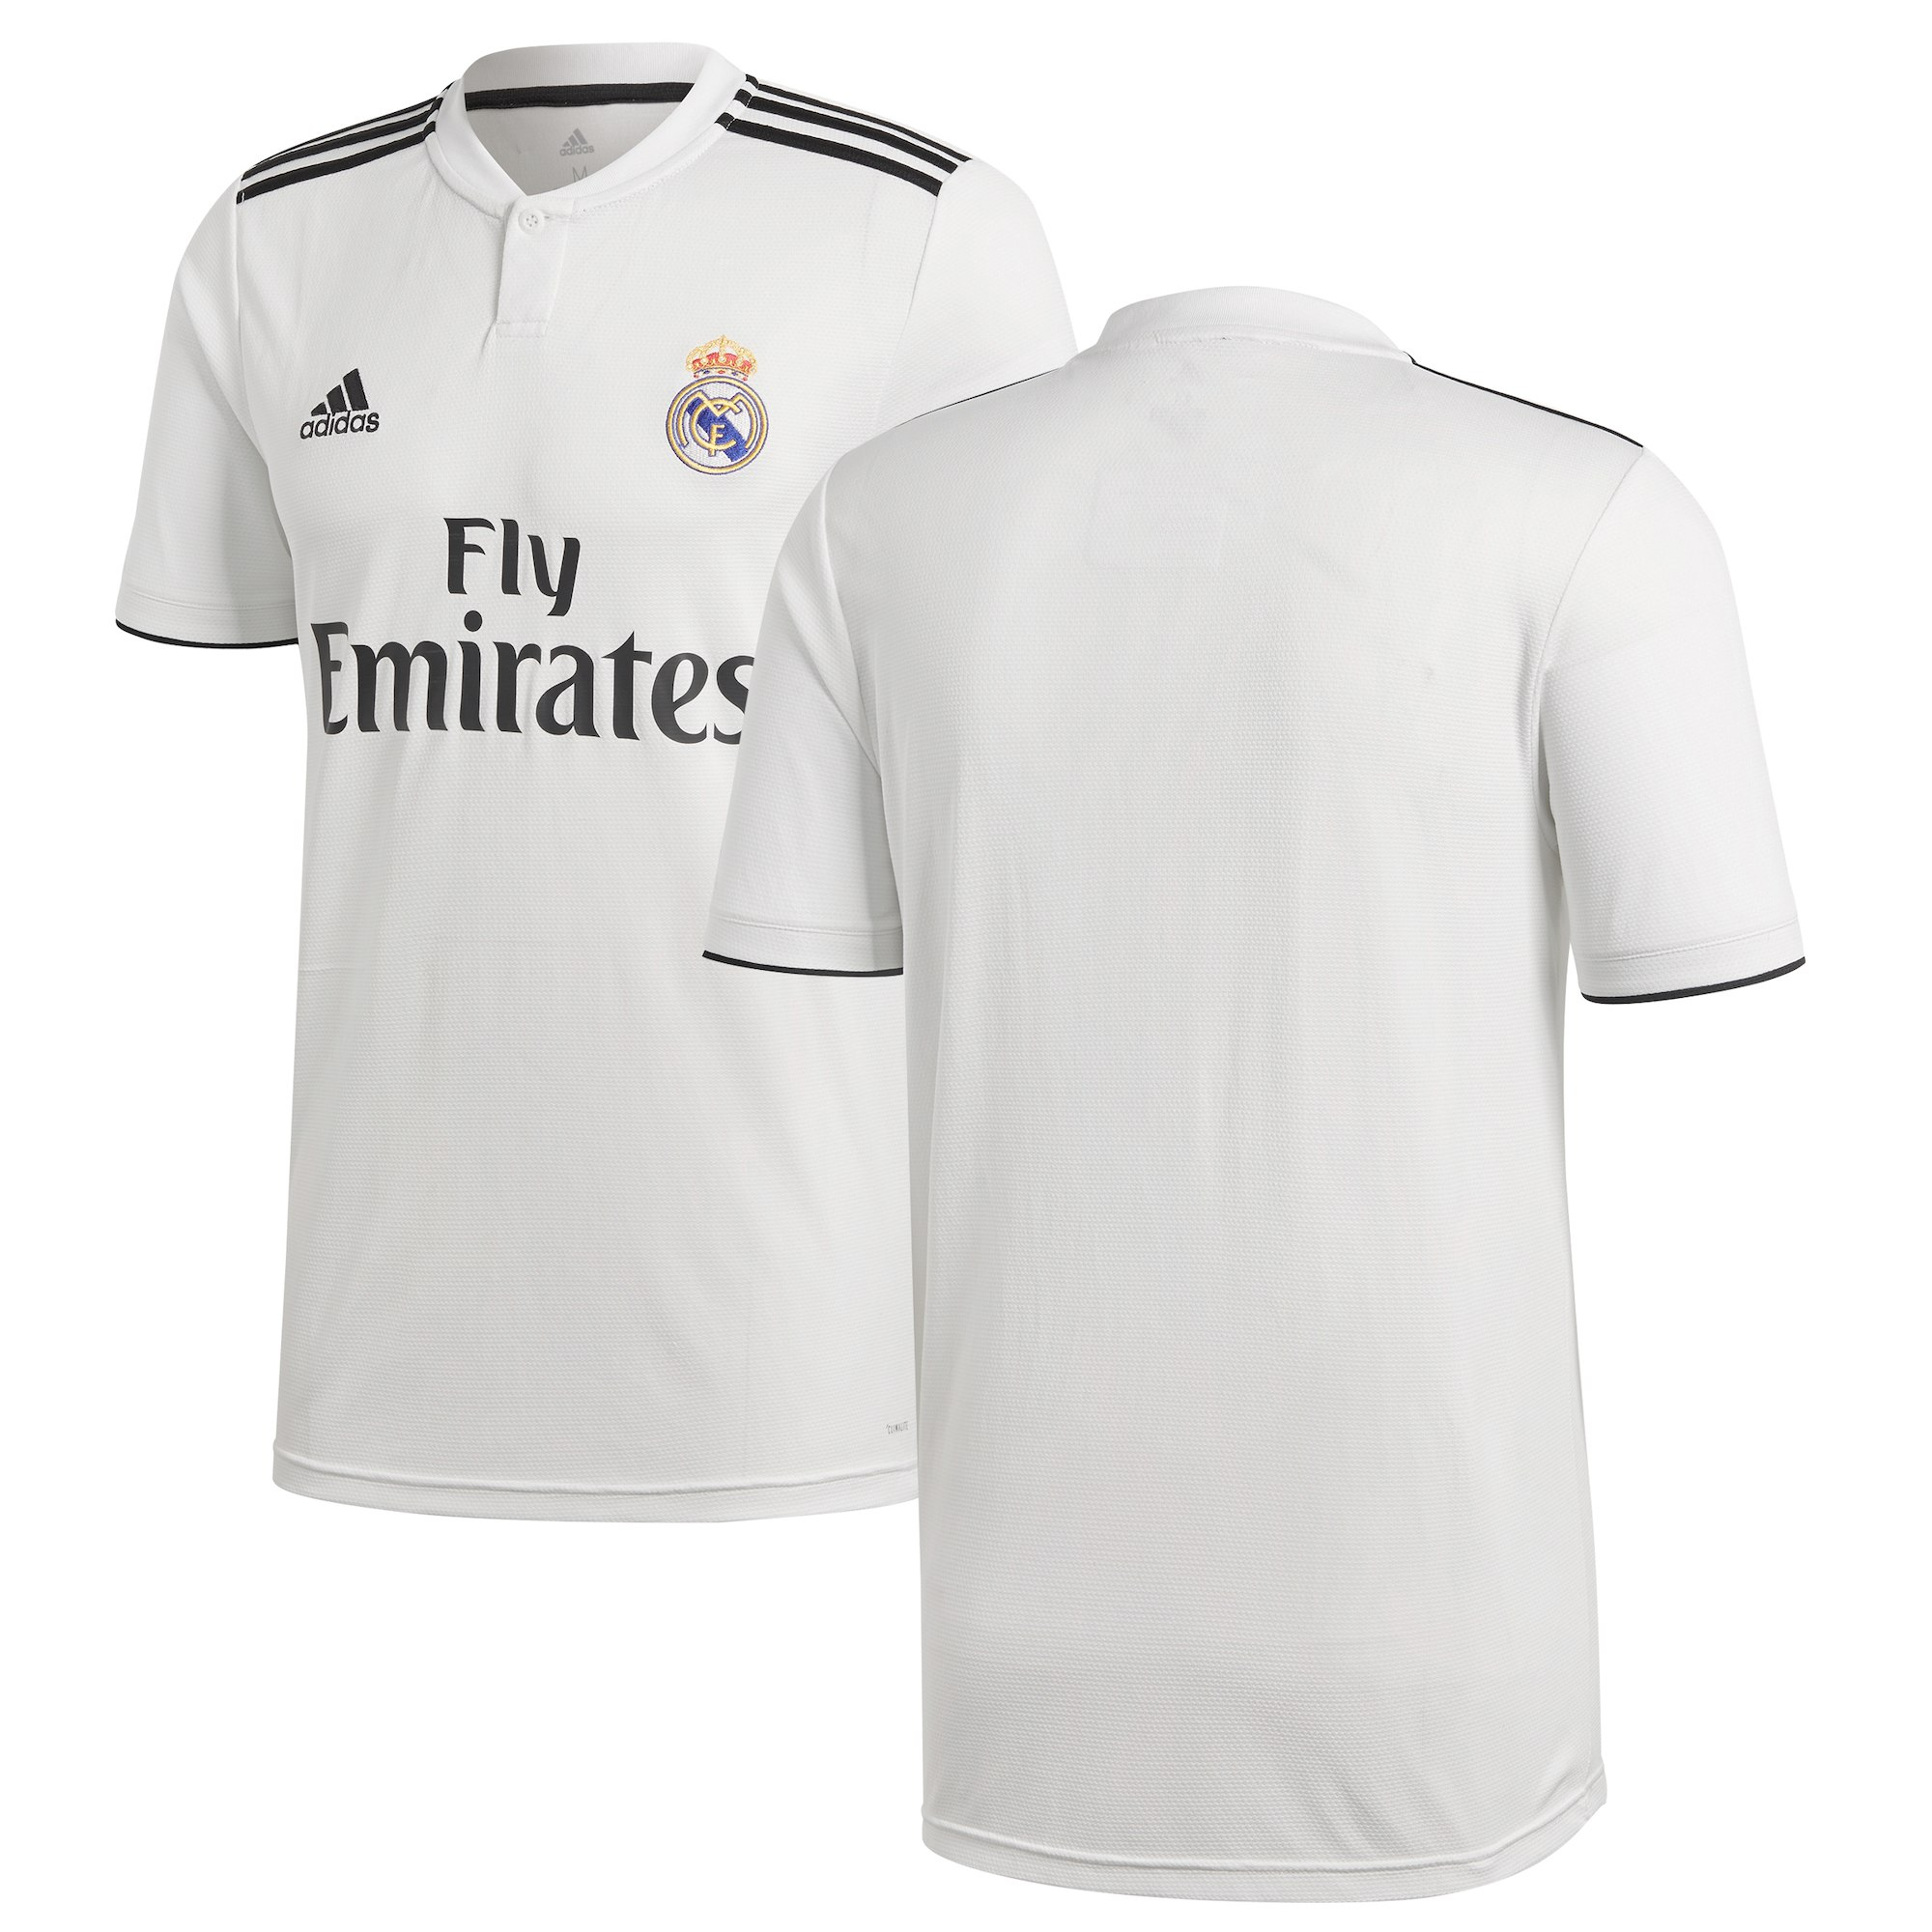 brand new d170f 45383 Jersey - Real Madrid Home Jersey 2018/2019 Football Jersey Online Malaysia  | J